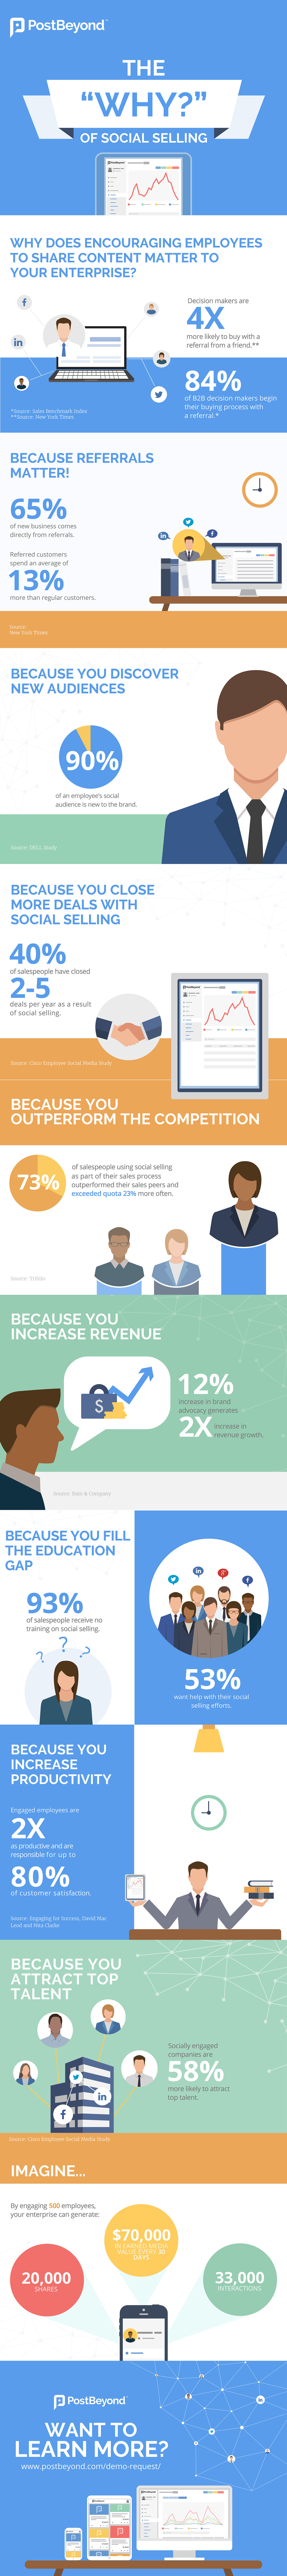 Why-Your-Sales-Team-Should-Use-Social-Selling-PostBeyond